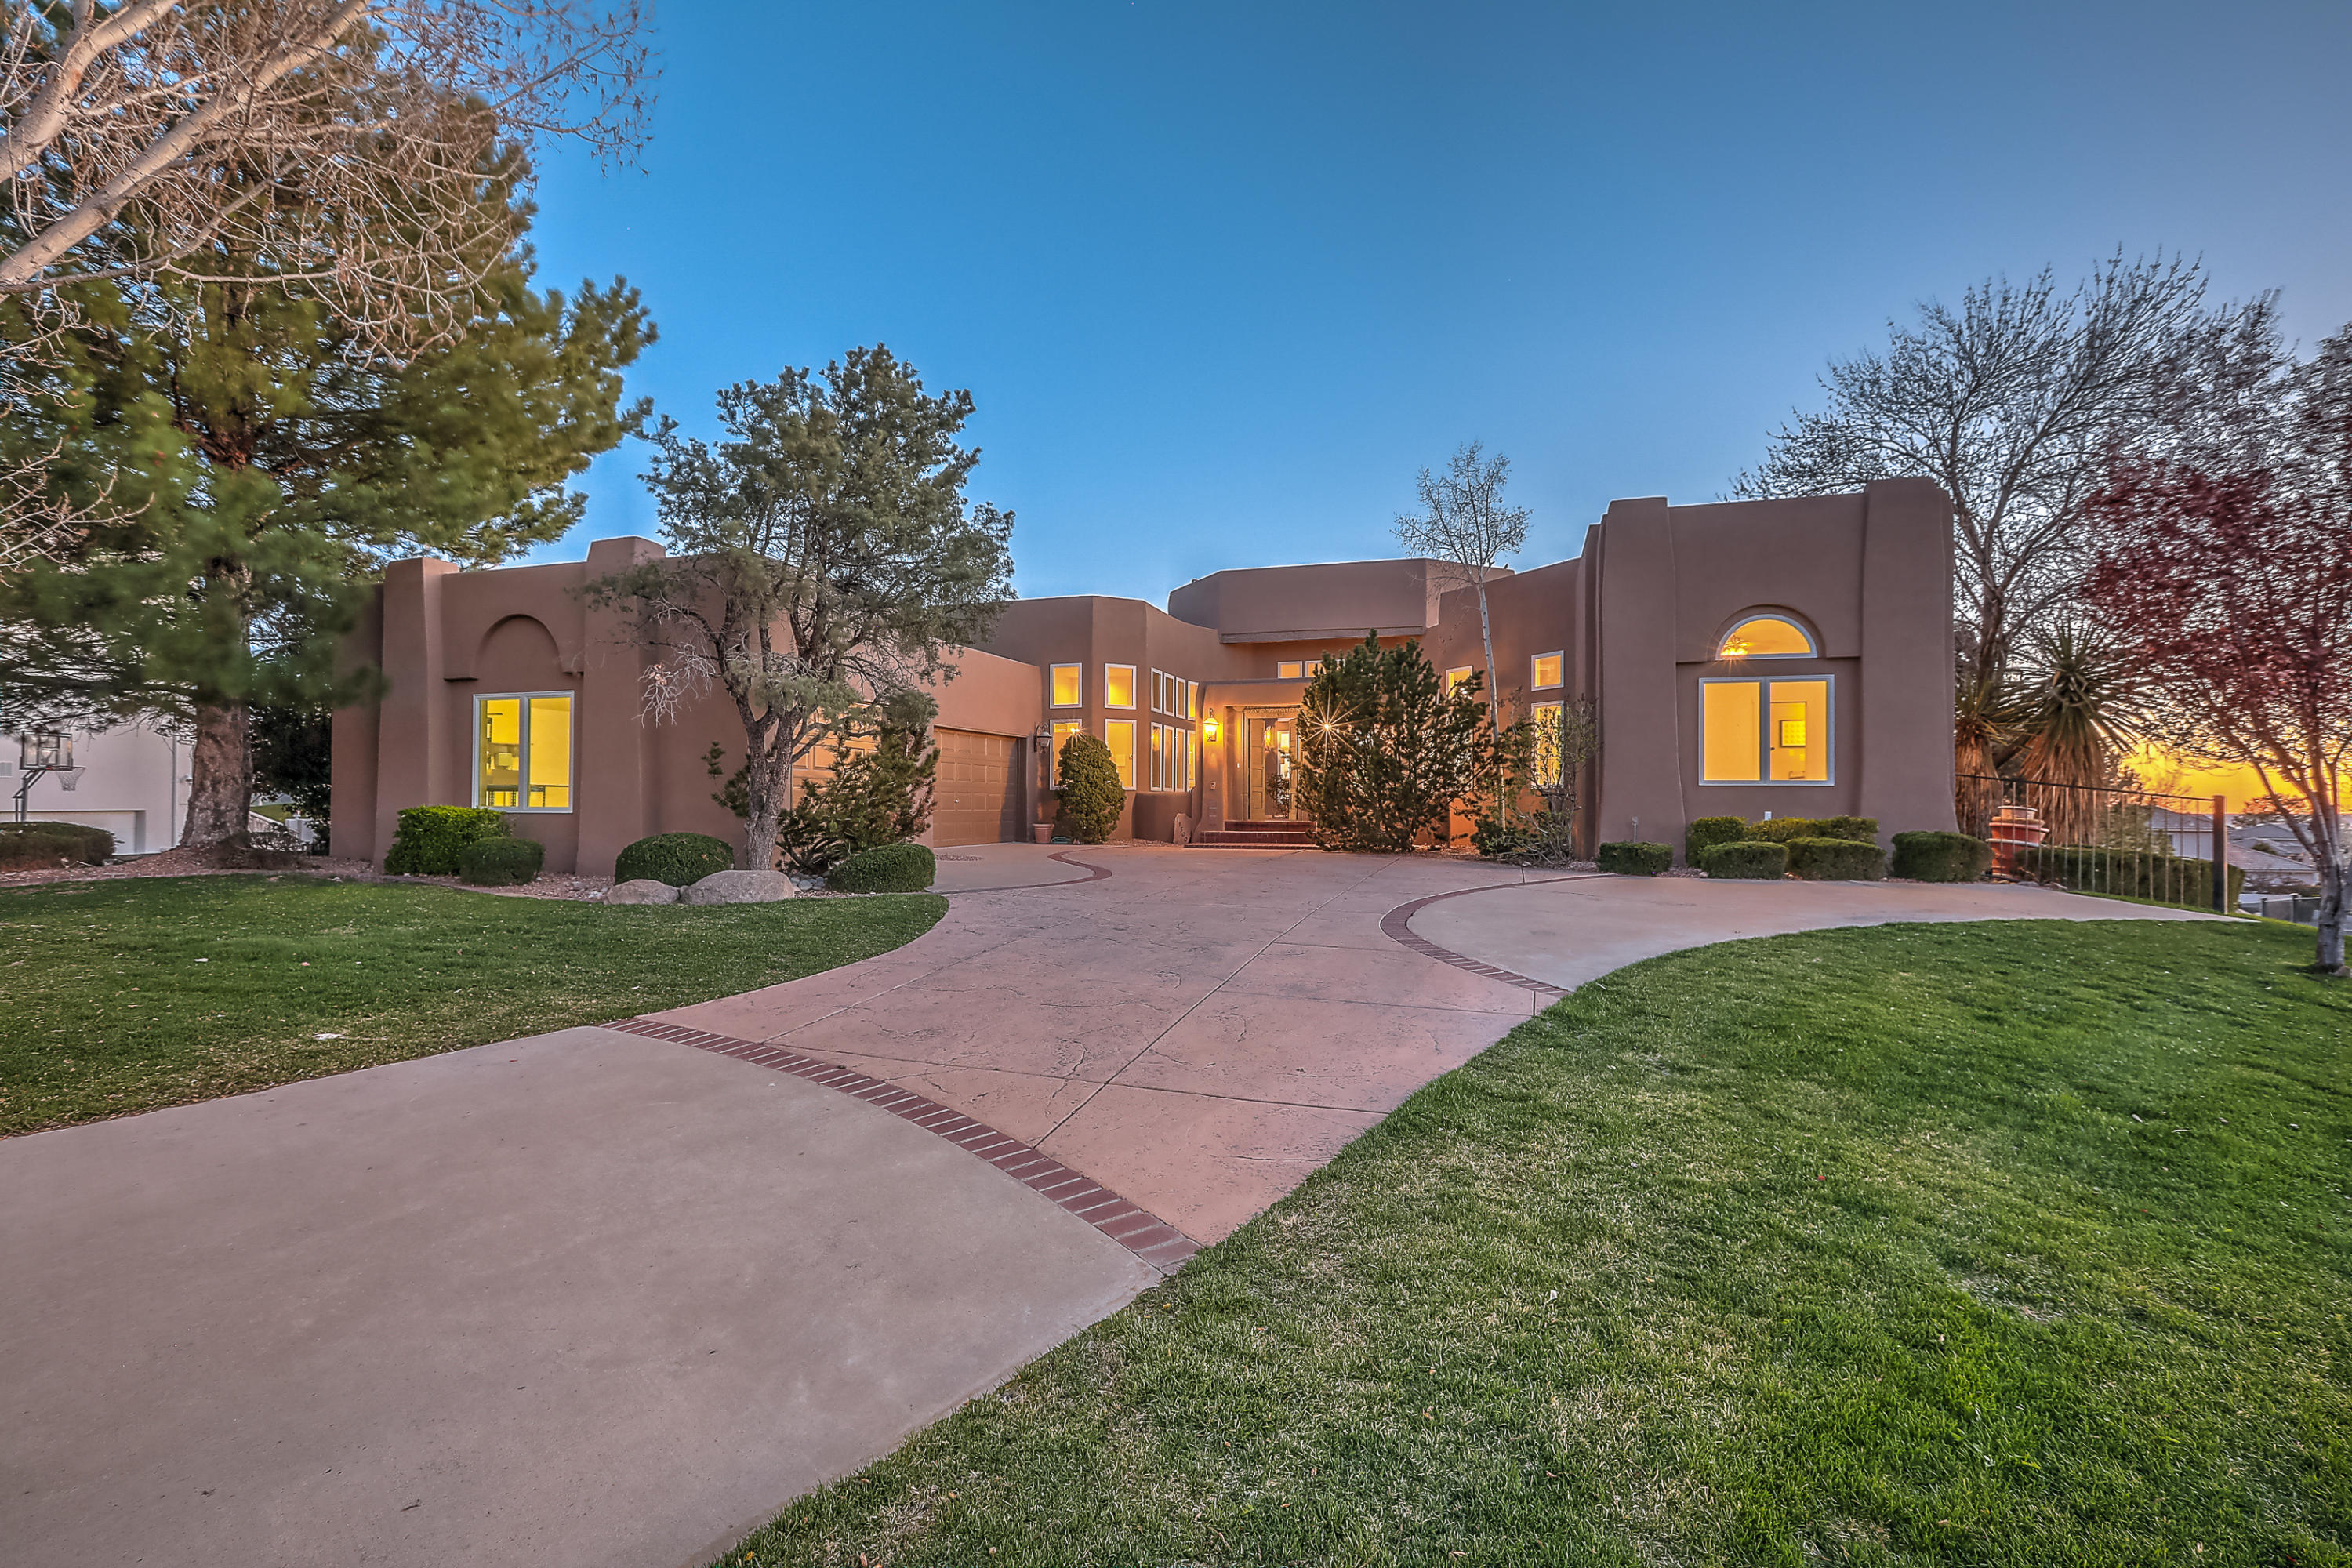 This incredible home sits on a large corner golf course lot in the luxury home subdivision of Sauvignon! You'll enjoy views of the Sandia mountains or plush green Tanoan golf course from almost every room in the house. The kitchen, stucco, windows, roof were all re-done in 2019. The open and bright kitchen has stainless steel appliances, granite, walk in pantry, desk area, island, breakfast nook, formal dining area and more.  The elegant master bedroom on the main floor has a large walk in closet, double sink vanity, a custom snail shower, jetted tub, fireplace, and an outdoor deck with views.  Downstairs is a large family room with 3 other bedrooms and 2 full bathrooms.  The outdoor space is cozy and inviting with several patio and deck areas, grass, trees, and access to the golf course.